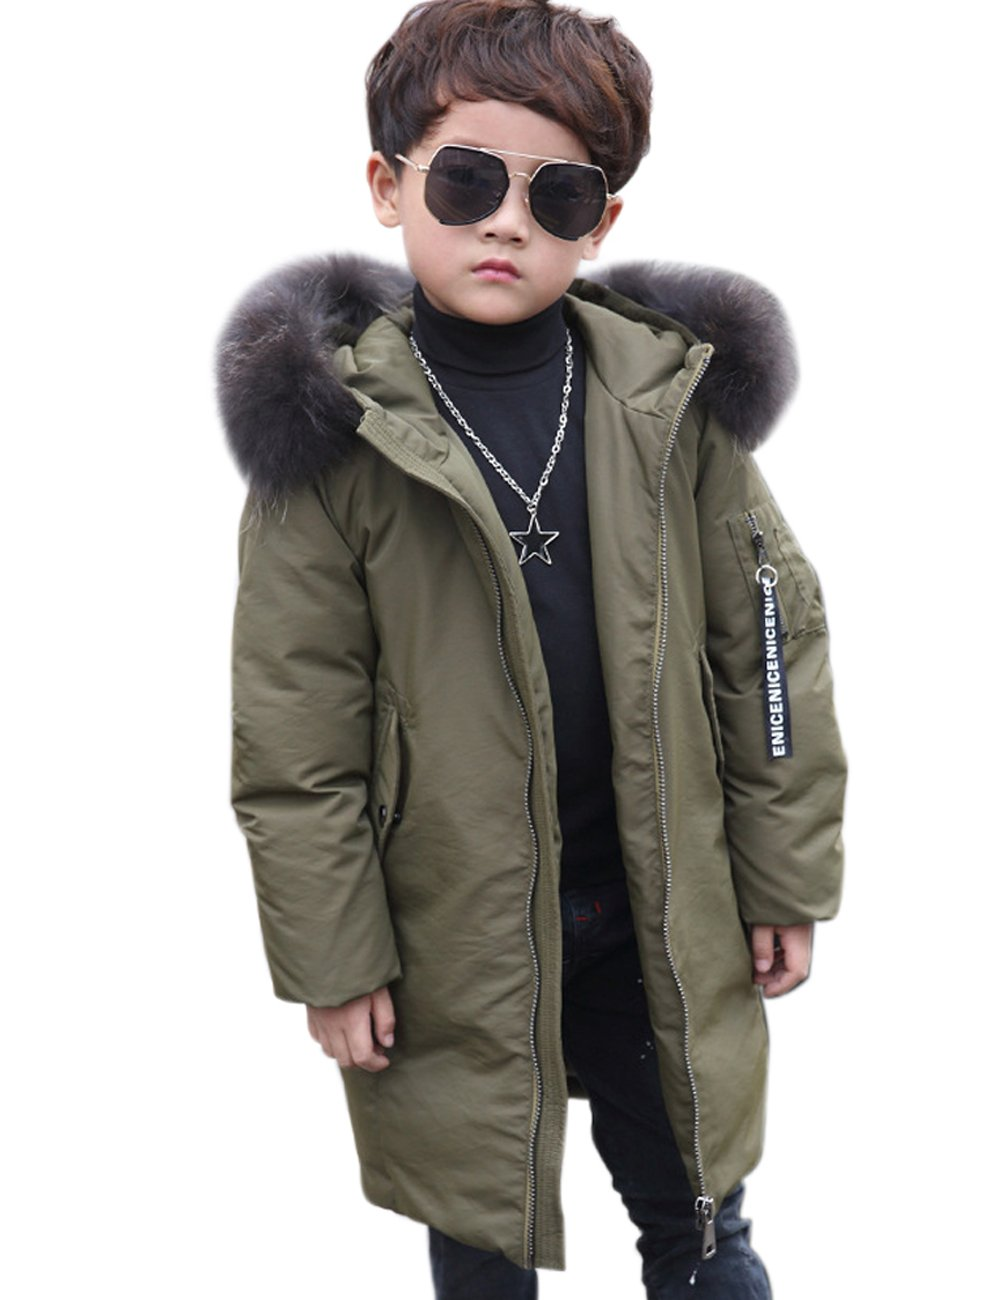 Menschwear Boy's Down Fur Hooded Jacket Winter Warm Outwear Winter Coat (140,Army-Green)